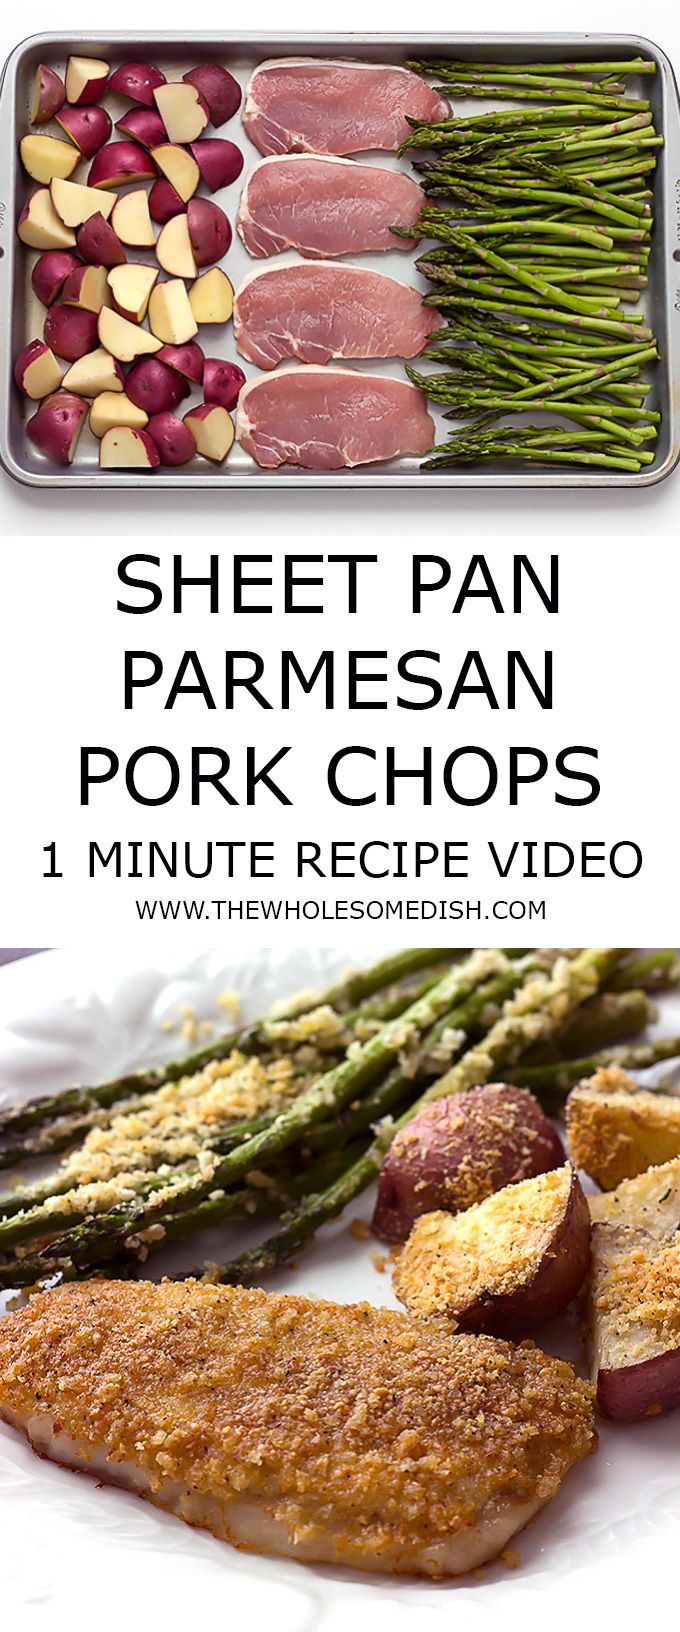 Watch this short video for my sheet pan baked pork chops potatoes watch this short video for my sheet pan baked pork chops potatoes asparagus recipe diy parties events and holidays pinterest baked pork chops forumfinder Image collections